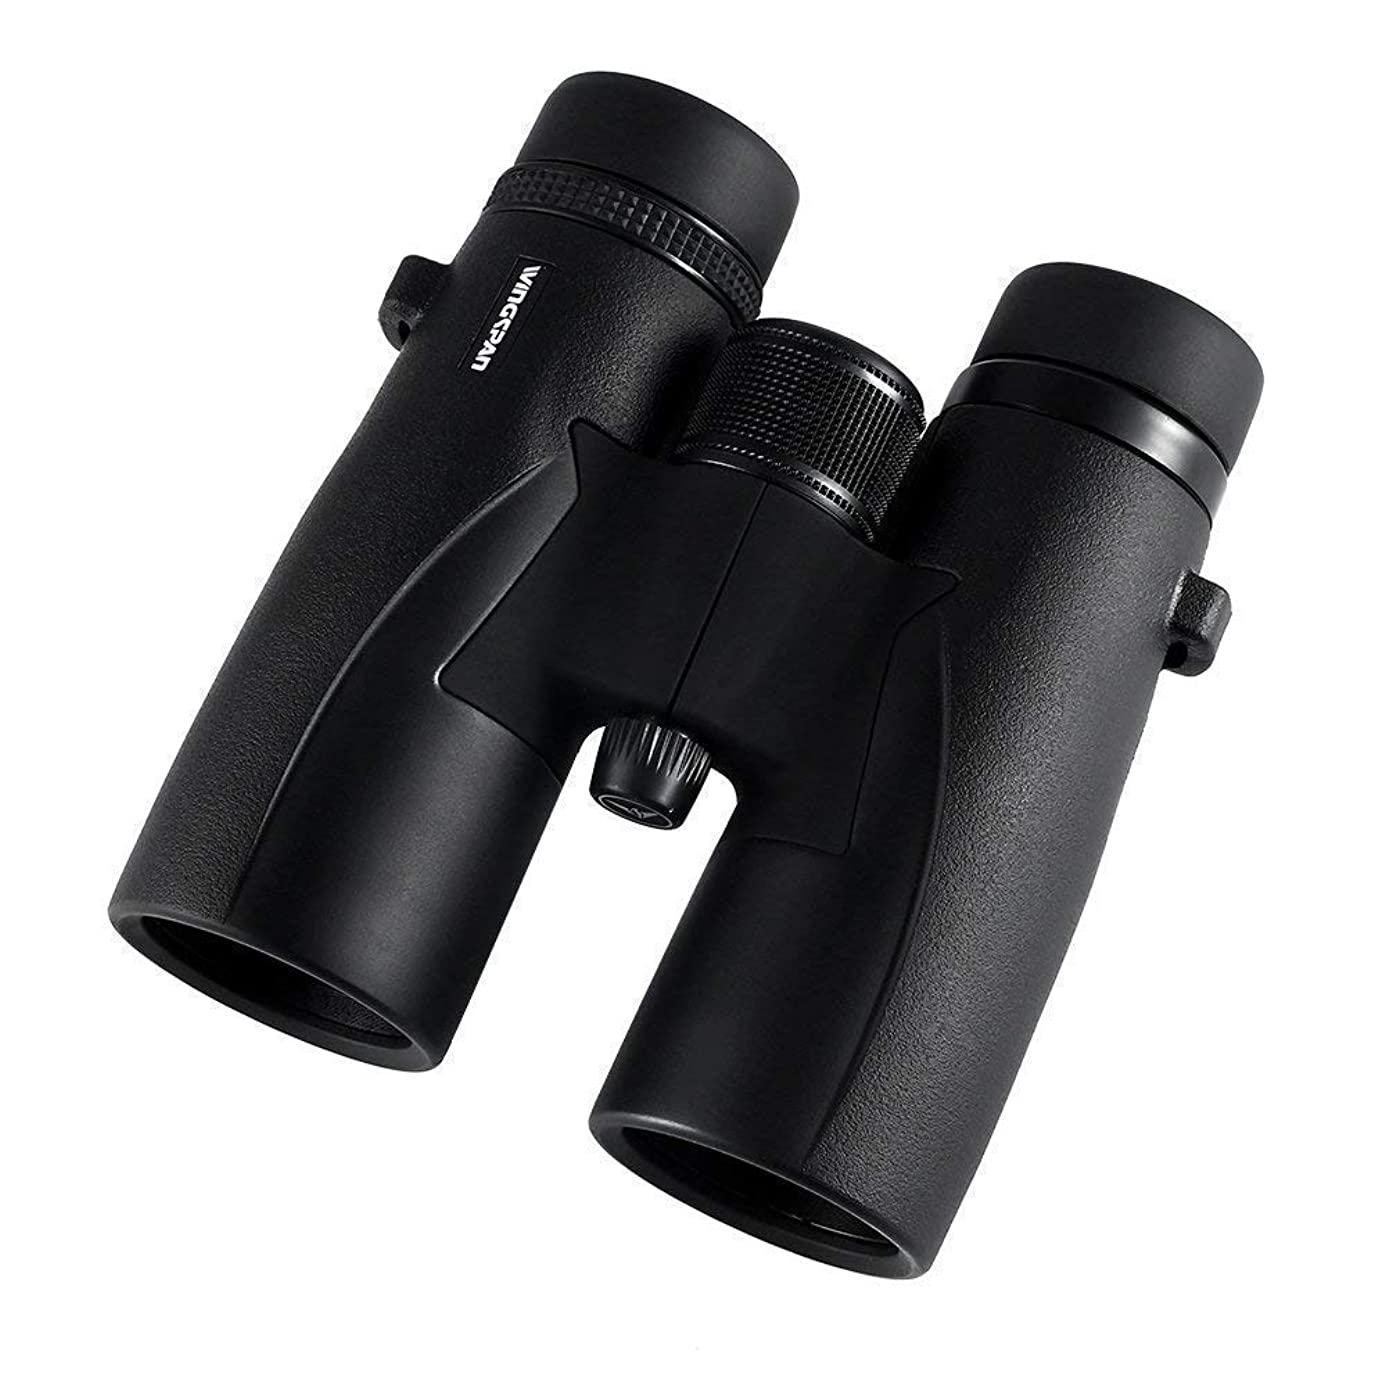 Wingspan Optics Skyview Ultra HD - 8X42 Binoculars for Bird Watching for Adults with ED Glass. Waterproof, Wide Field of View, Close Focus. Experience Better and Brighter Bird Watching in Ultra HD